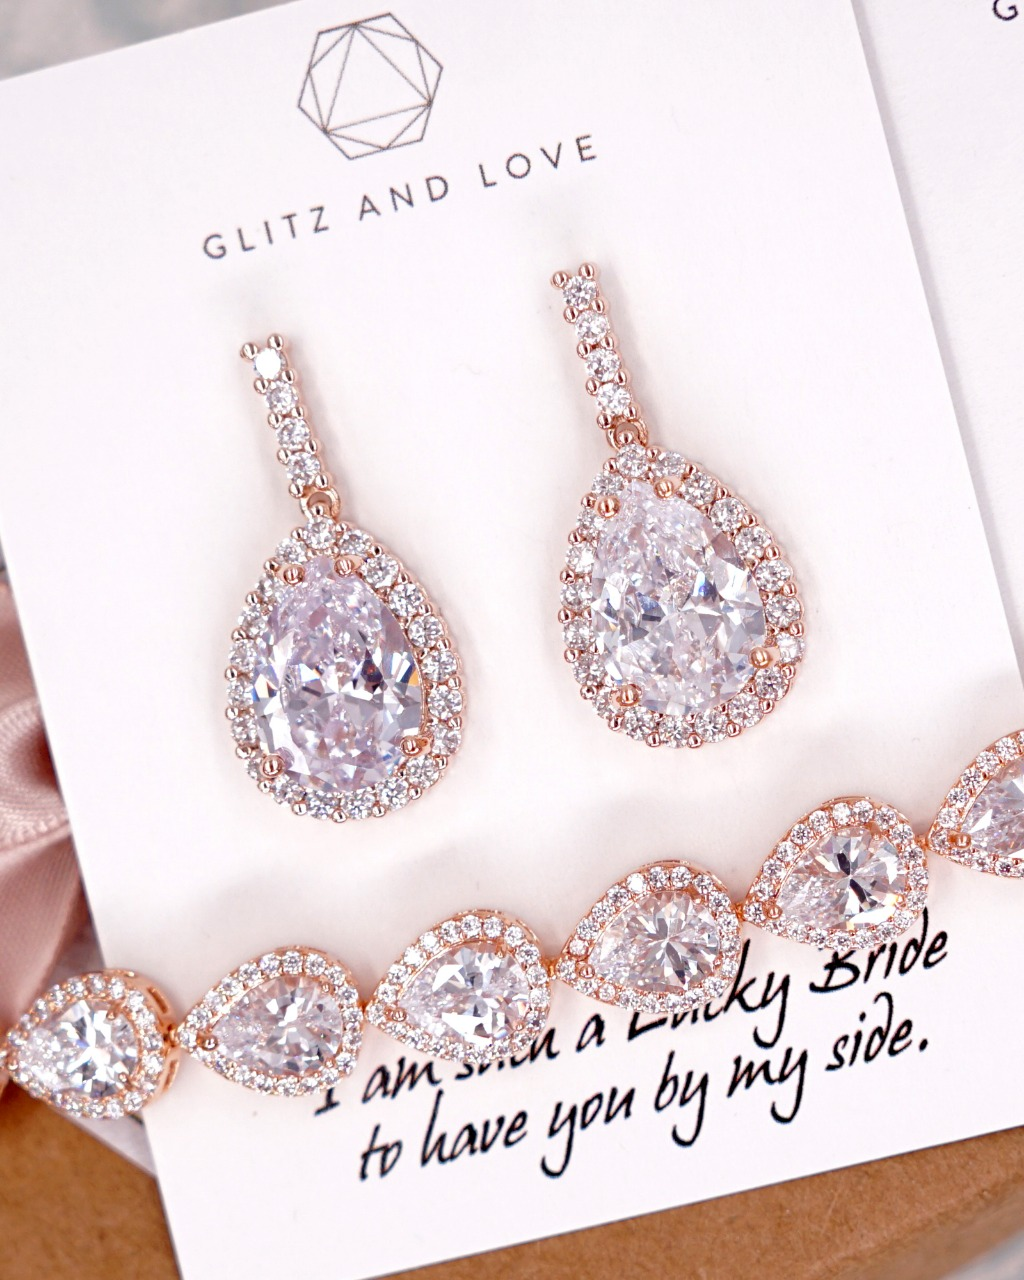 Rose Gold Teardrop CZ Jewelry earrings, bracelet, necklace, brides, bridesmaids, bridal shower gifts, personalised gift, mother of